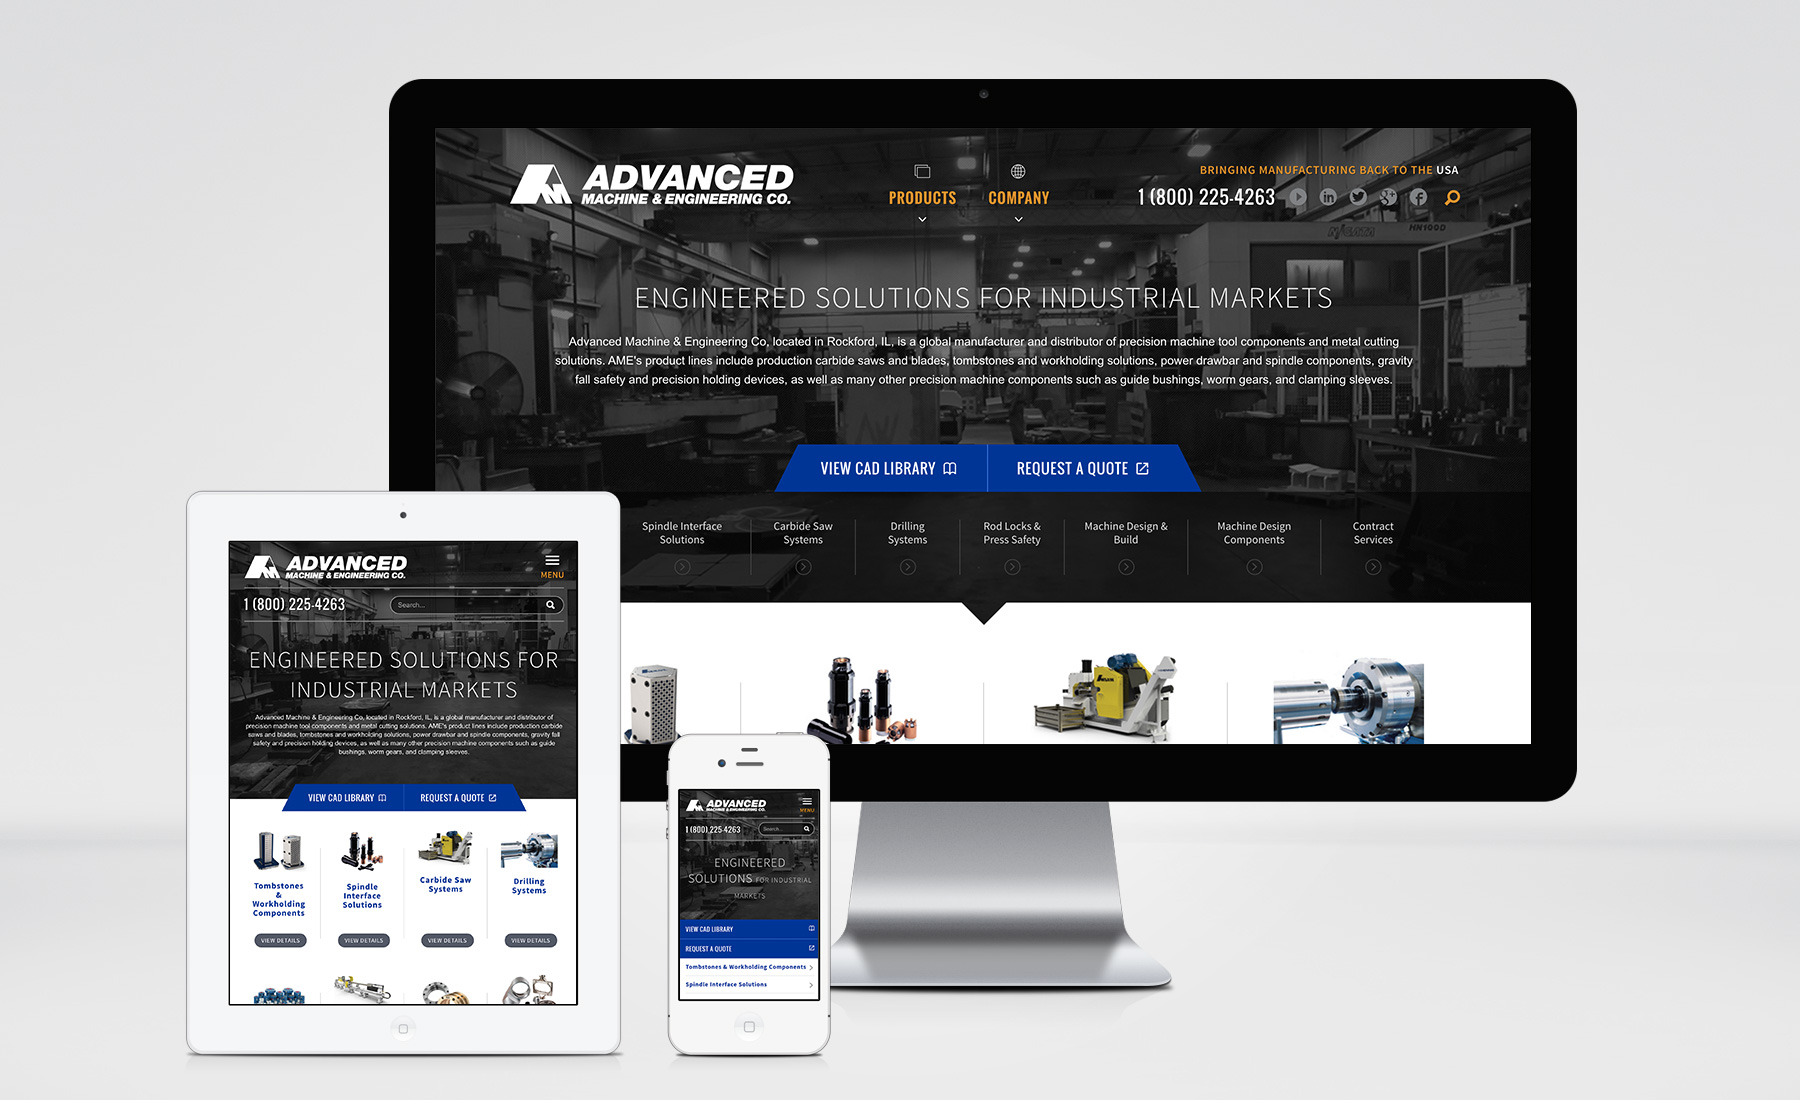 Advanced Machine & Engineering (AME) Website